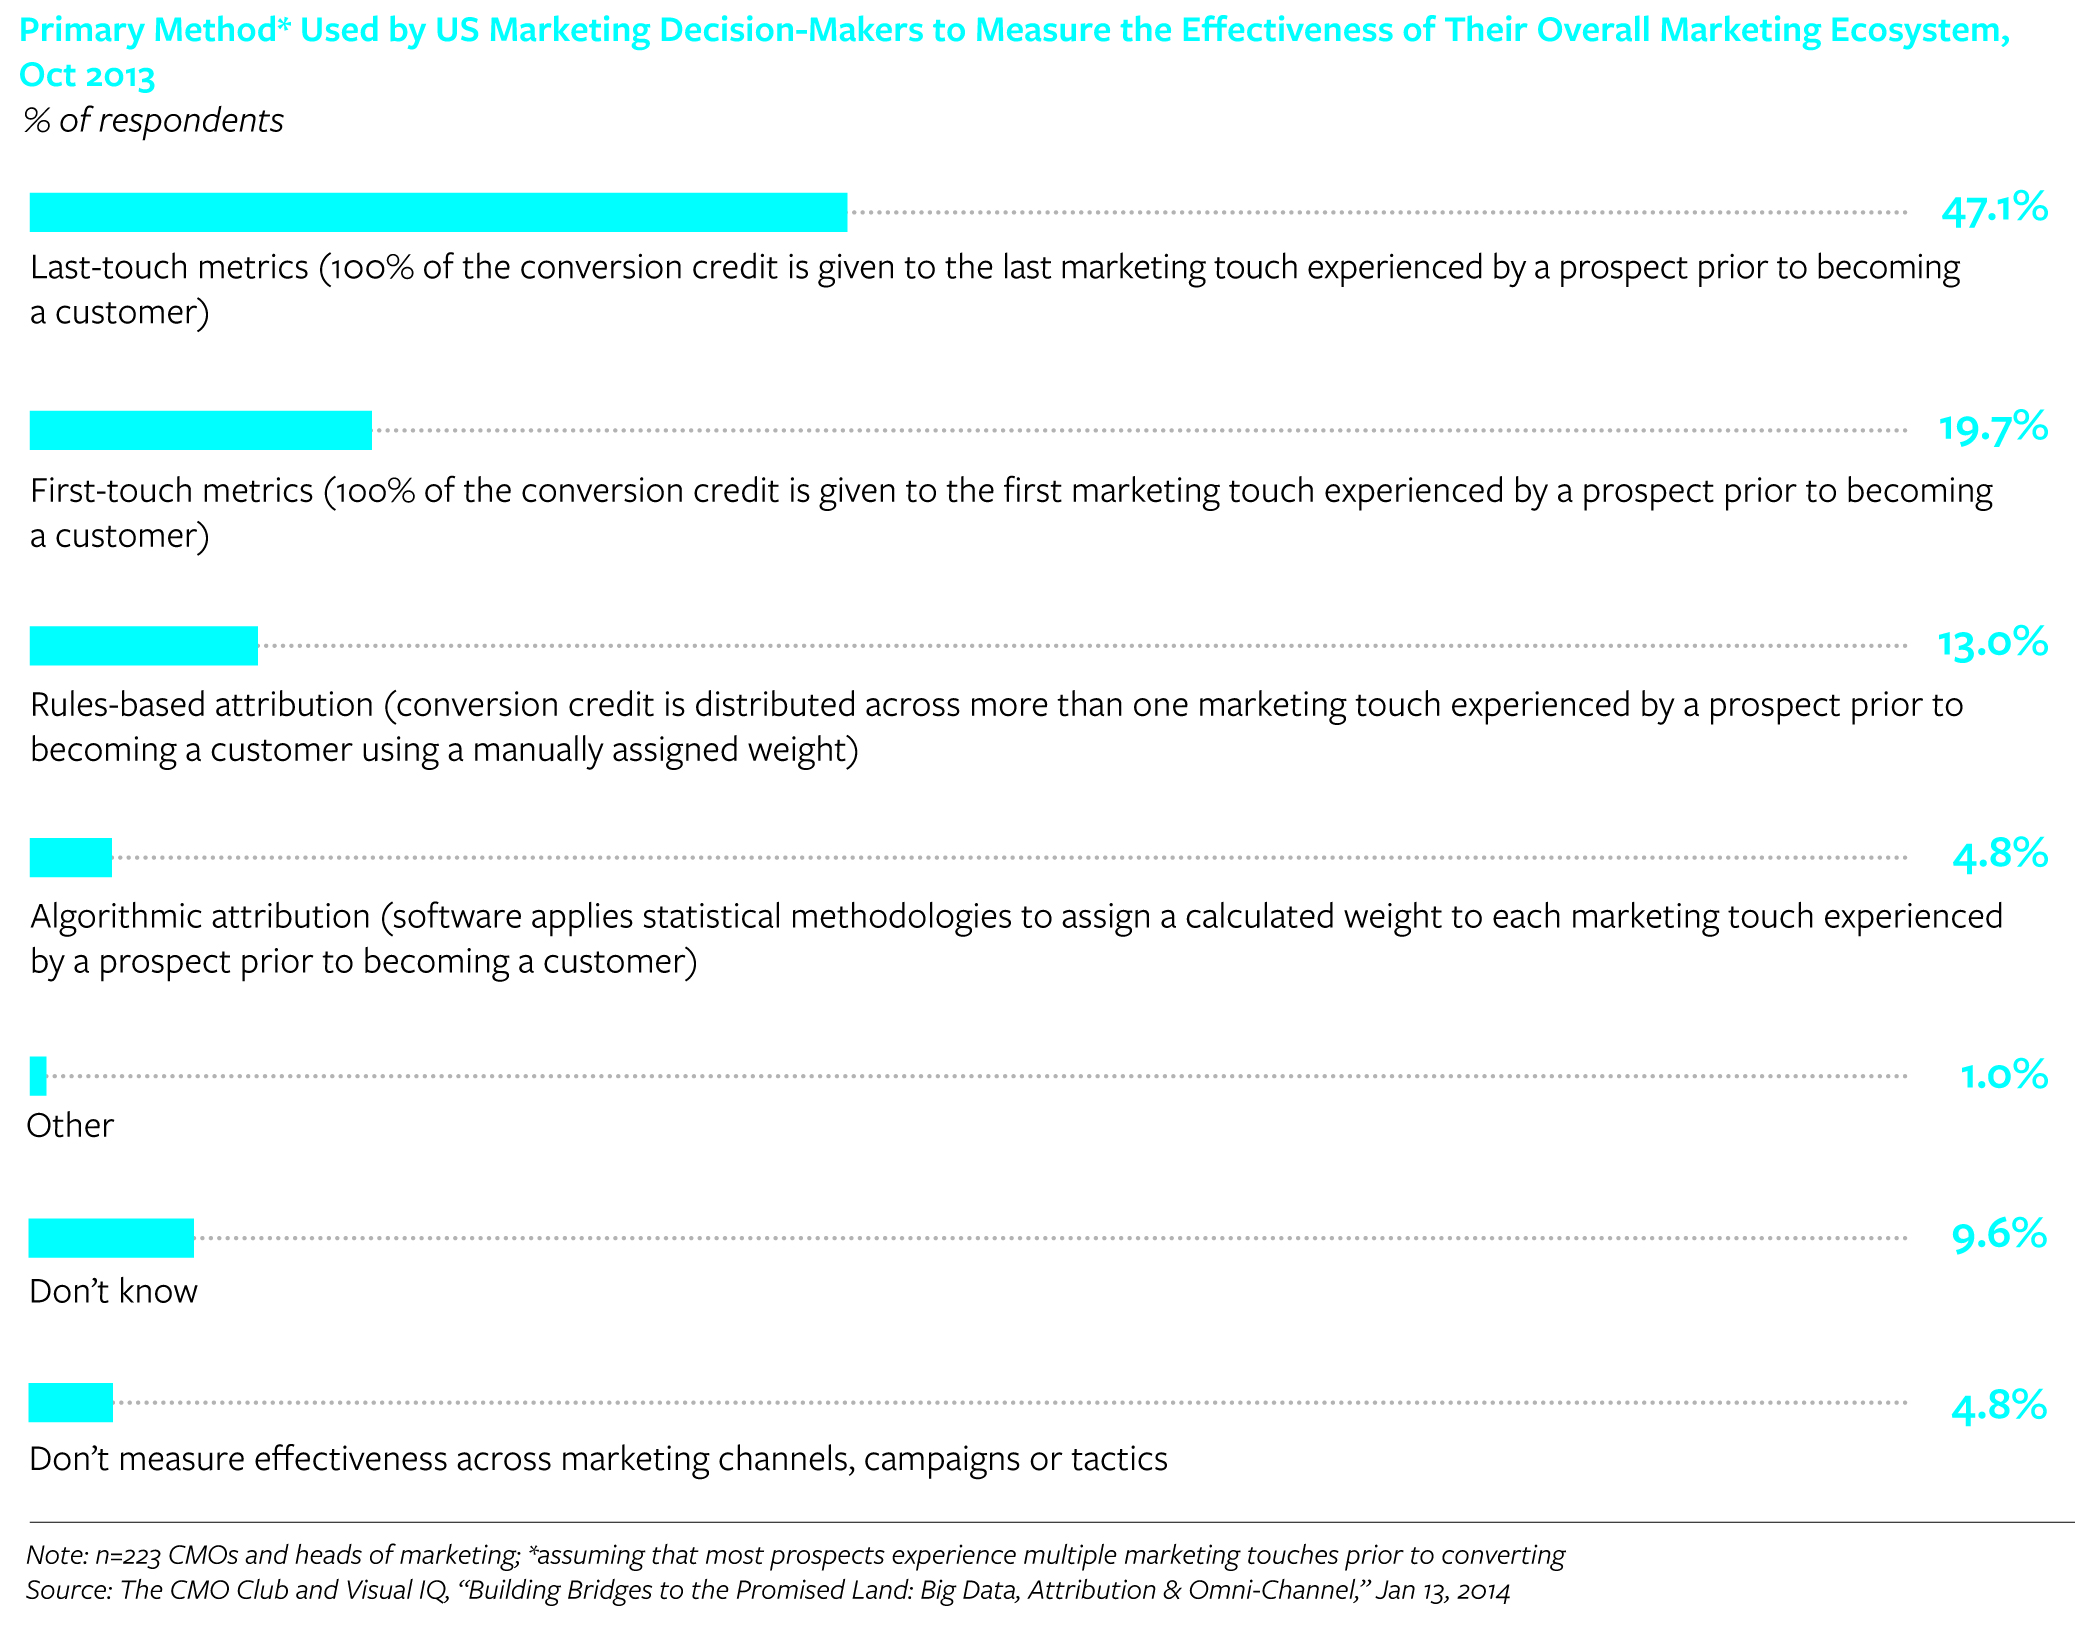 Primary method used to measure marketing effectiveness